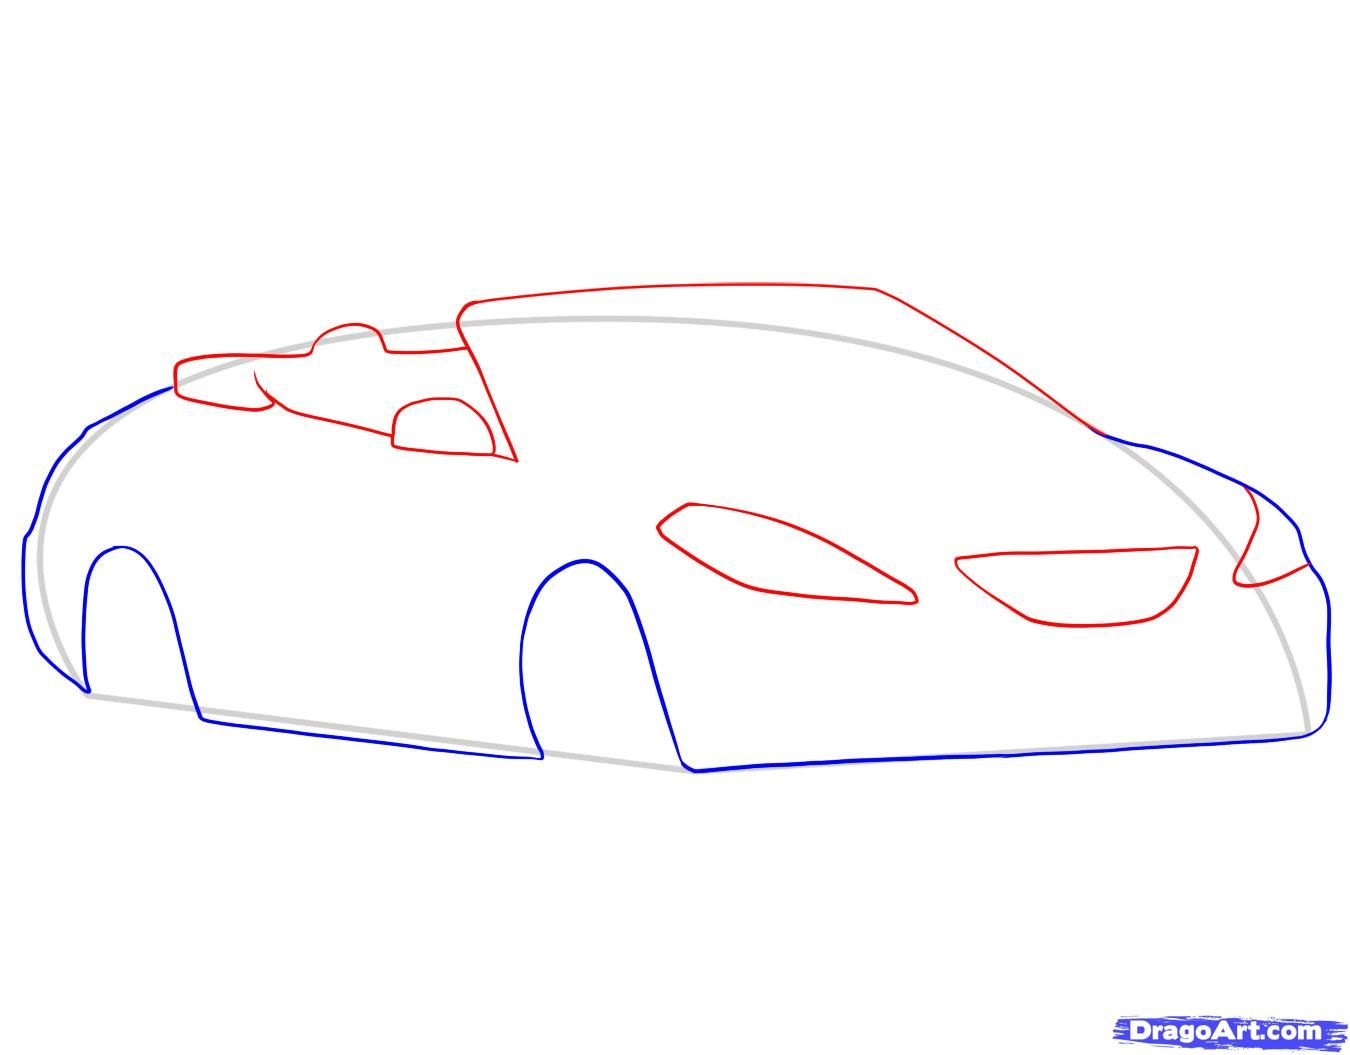 How to draw the Camaro car step by step 5